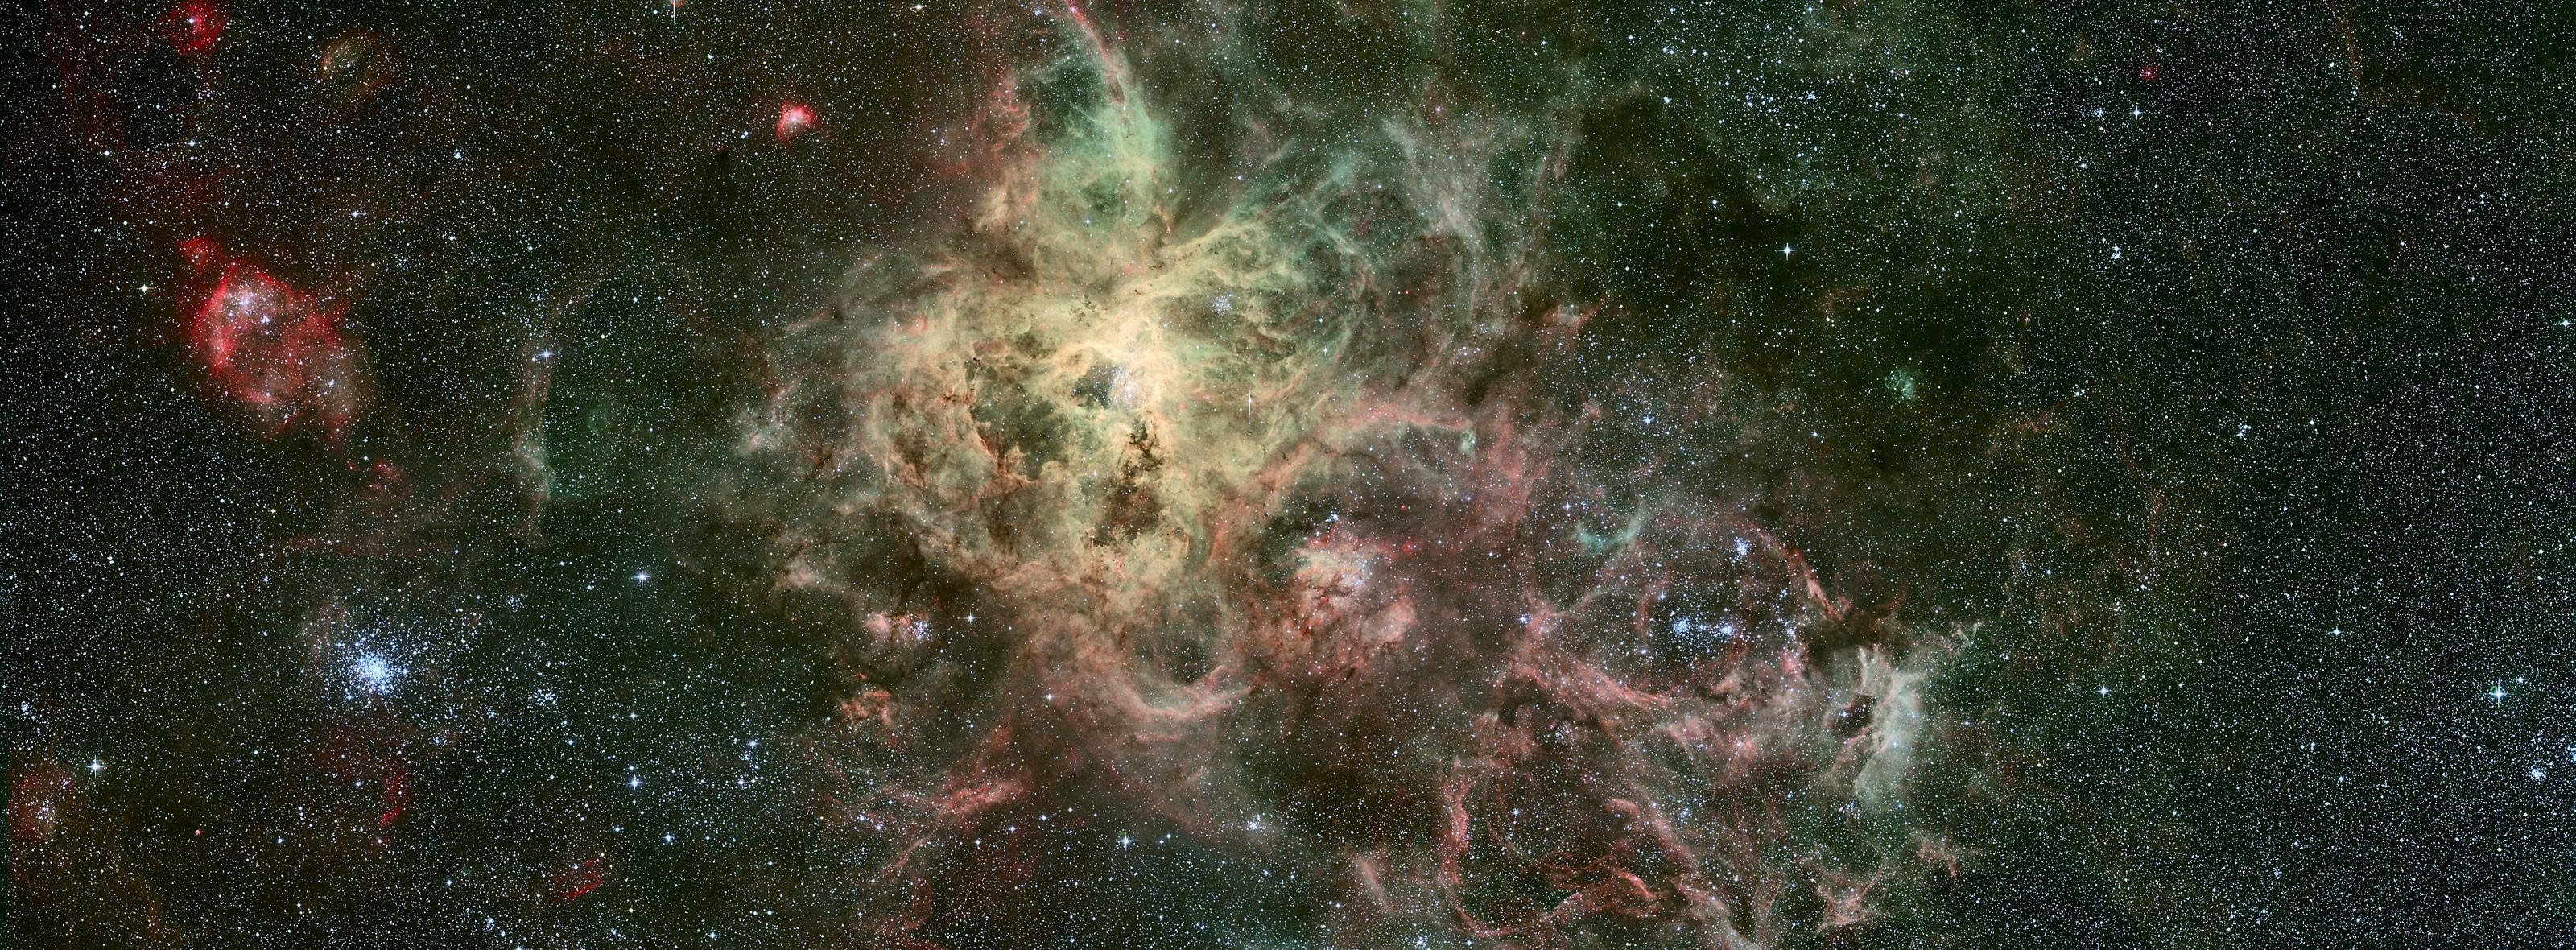 147461 download wallpaper Nebula, Galaxy, Universe, Stains, Spots, Outbreaks, Flash, Stars screensavers and pictures for free